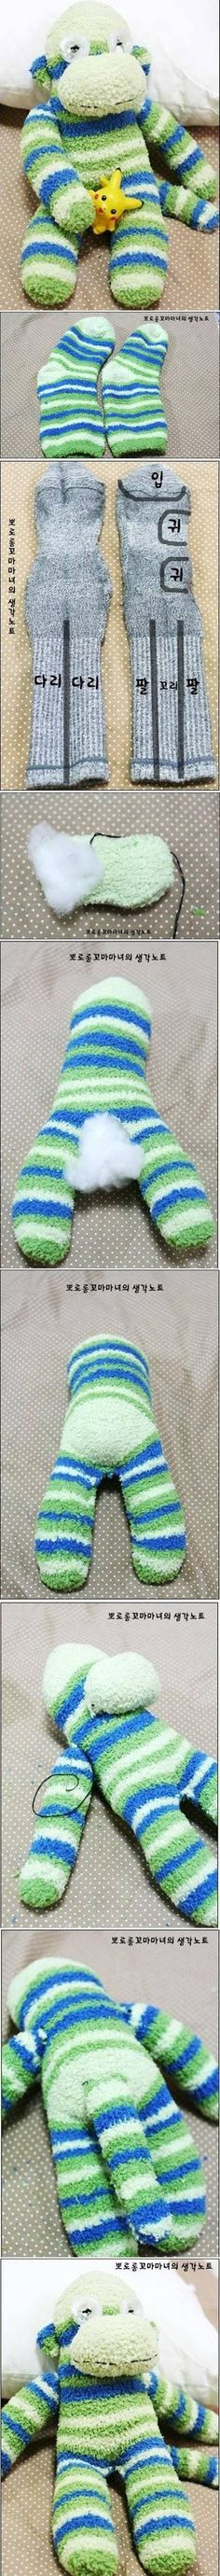 DIY Sock Monkey tutorial. Make it with a fuzzy sock to make your stuffed animal extra soft.